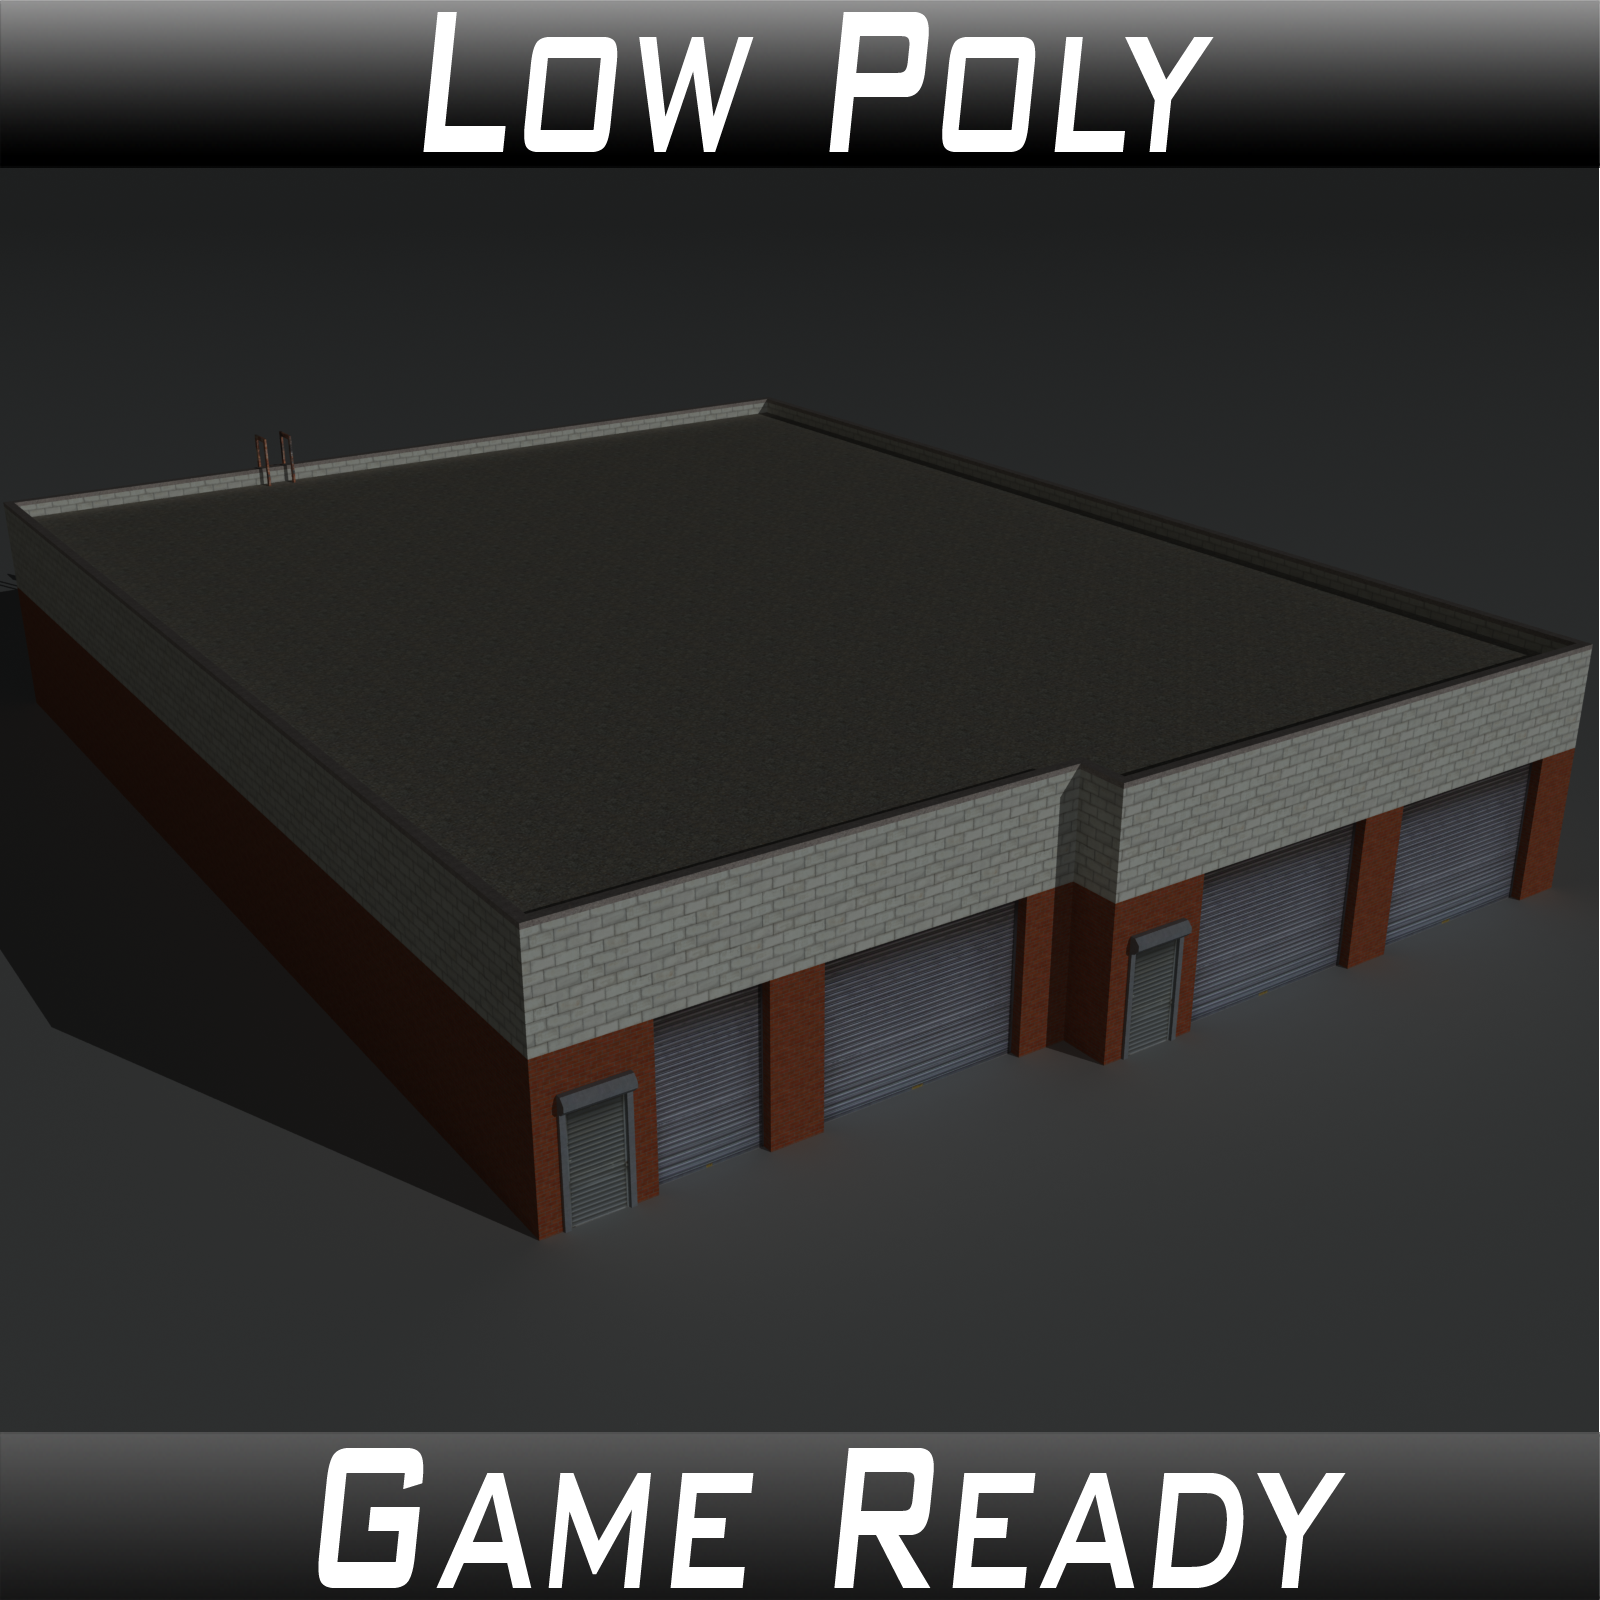 Low Poly Factory Building 20 - Extended Licence by 3dlands